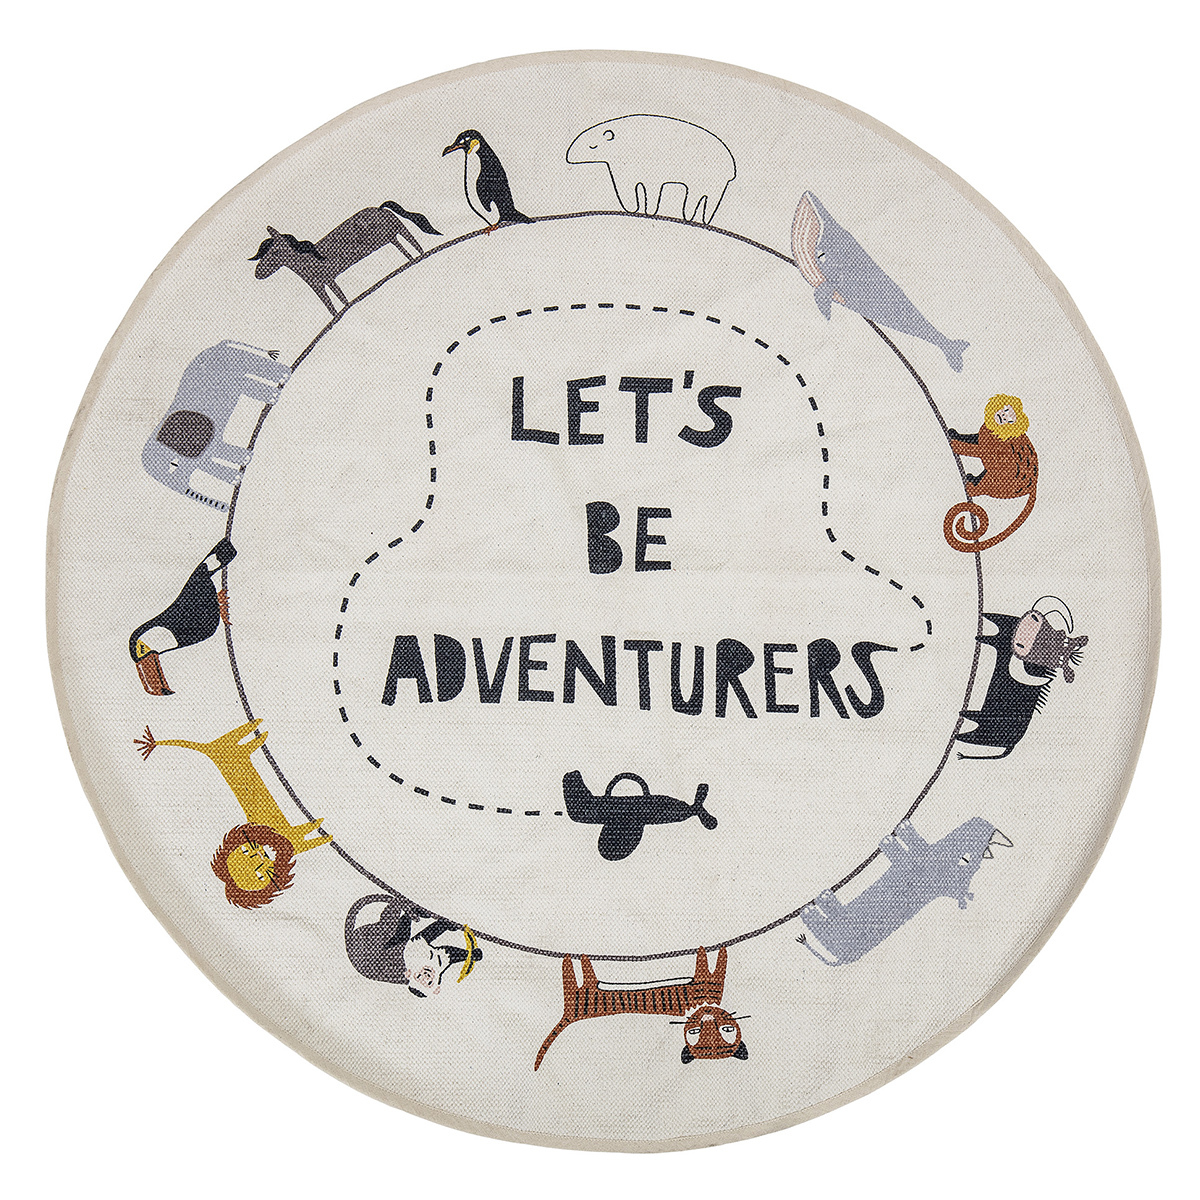 Tapis Tapis Coton Let's Be Adventurers - Ø 130 cm Tapis Coton Let's Be Adventurers - Ø 130 cm